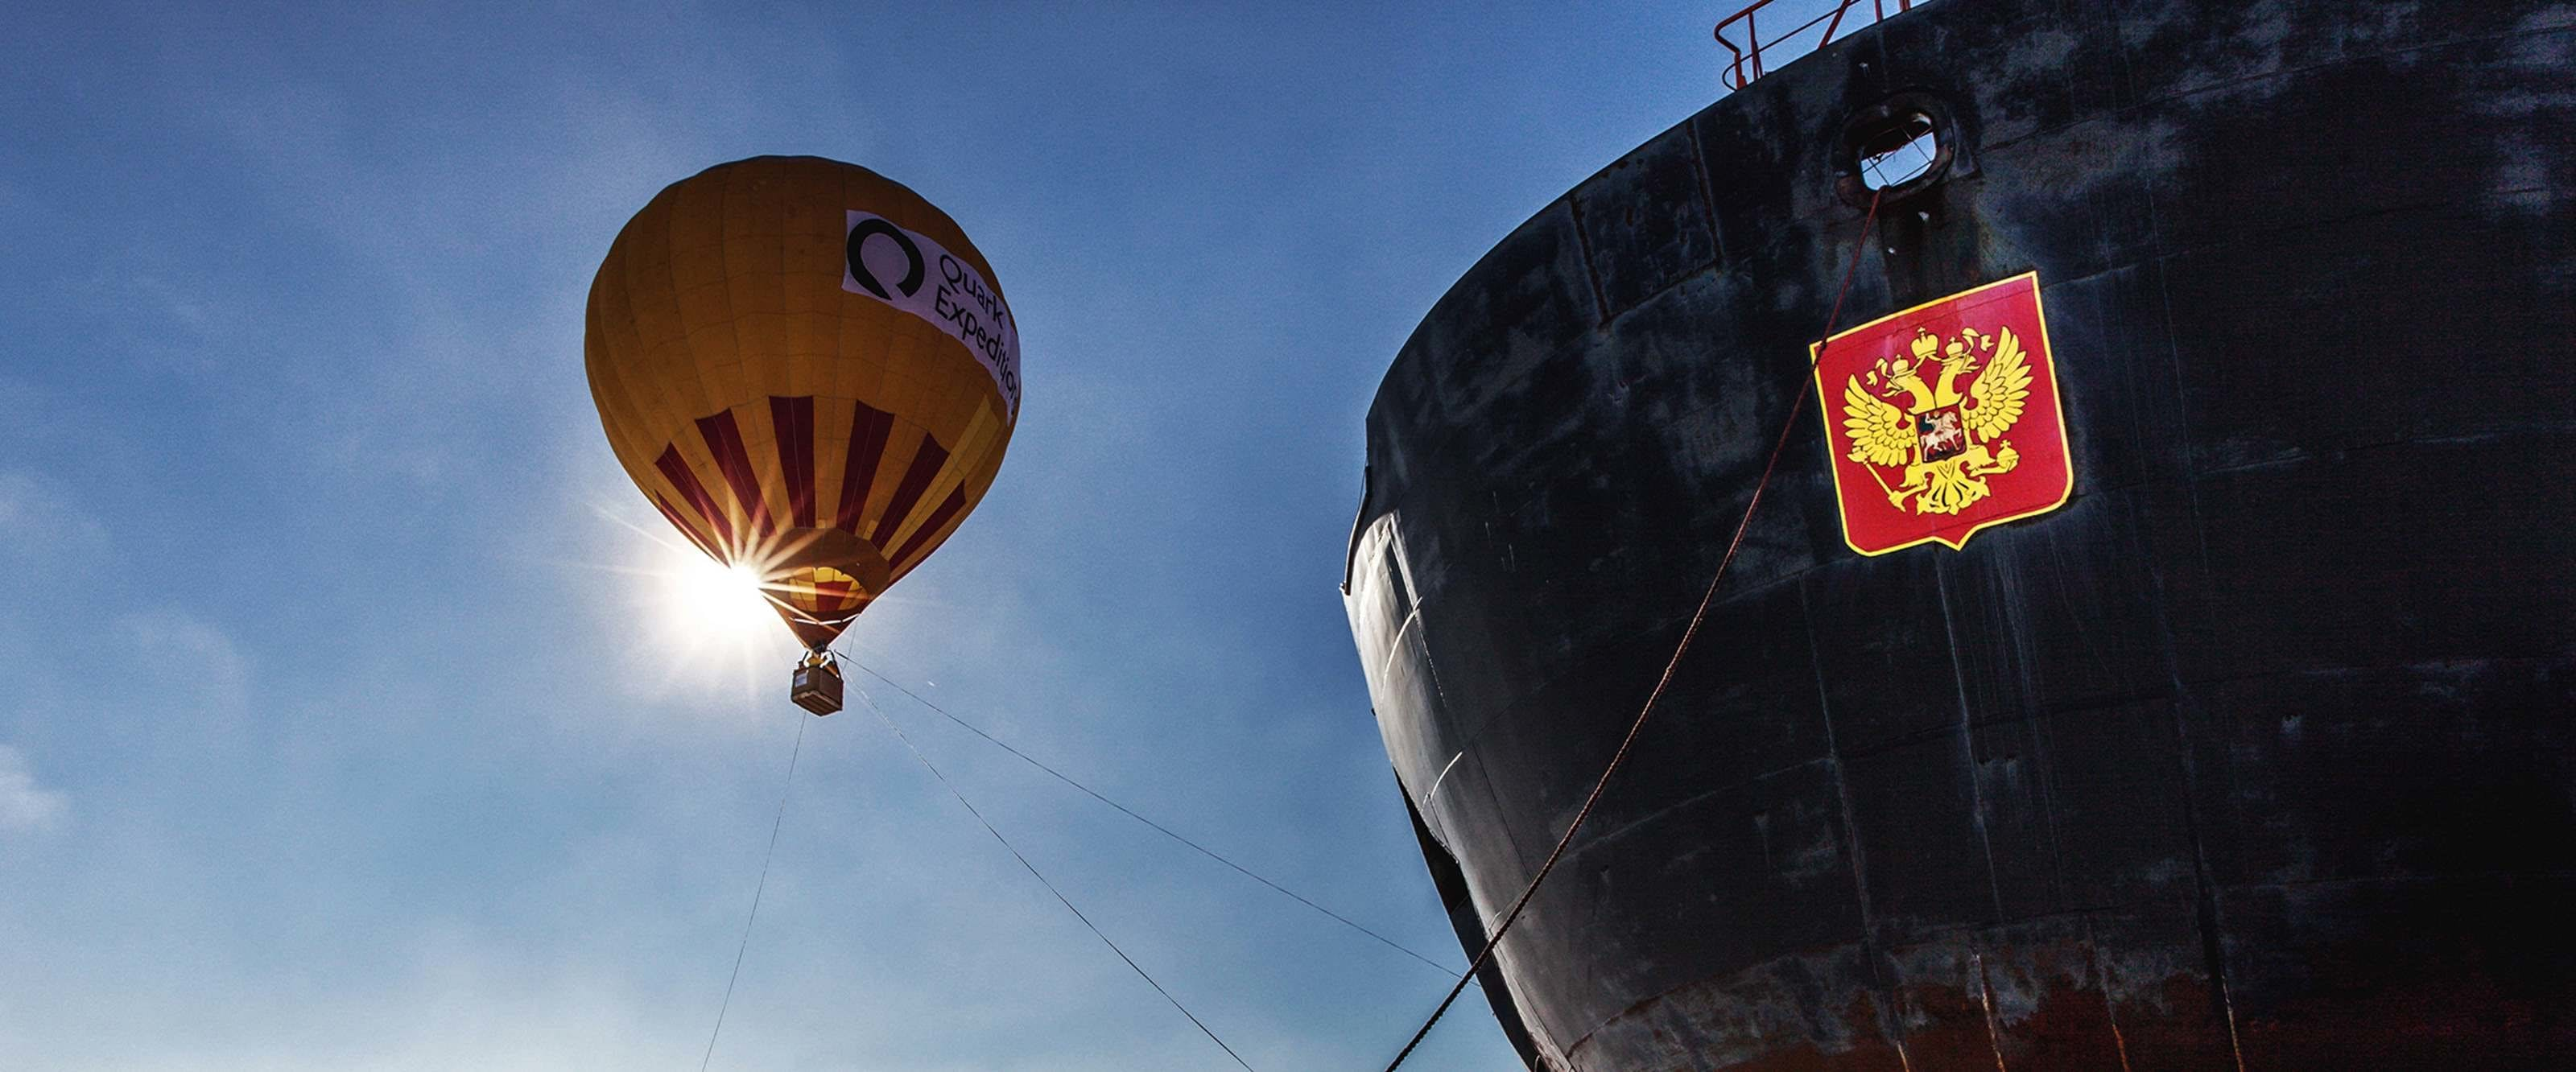 Quark takes you up for a breathtaking bird's eye view of 90° North in a hot-air balloon.